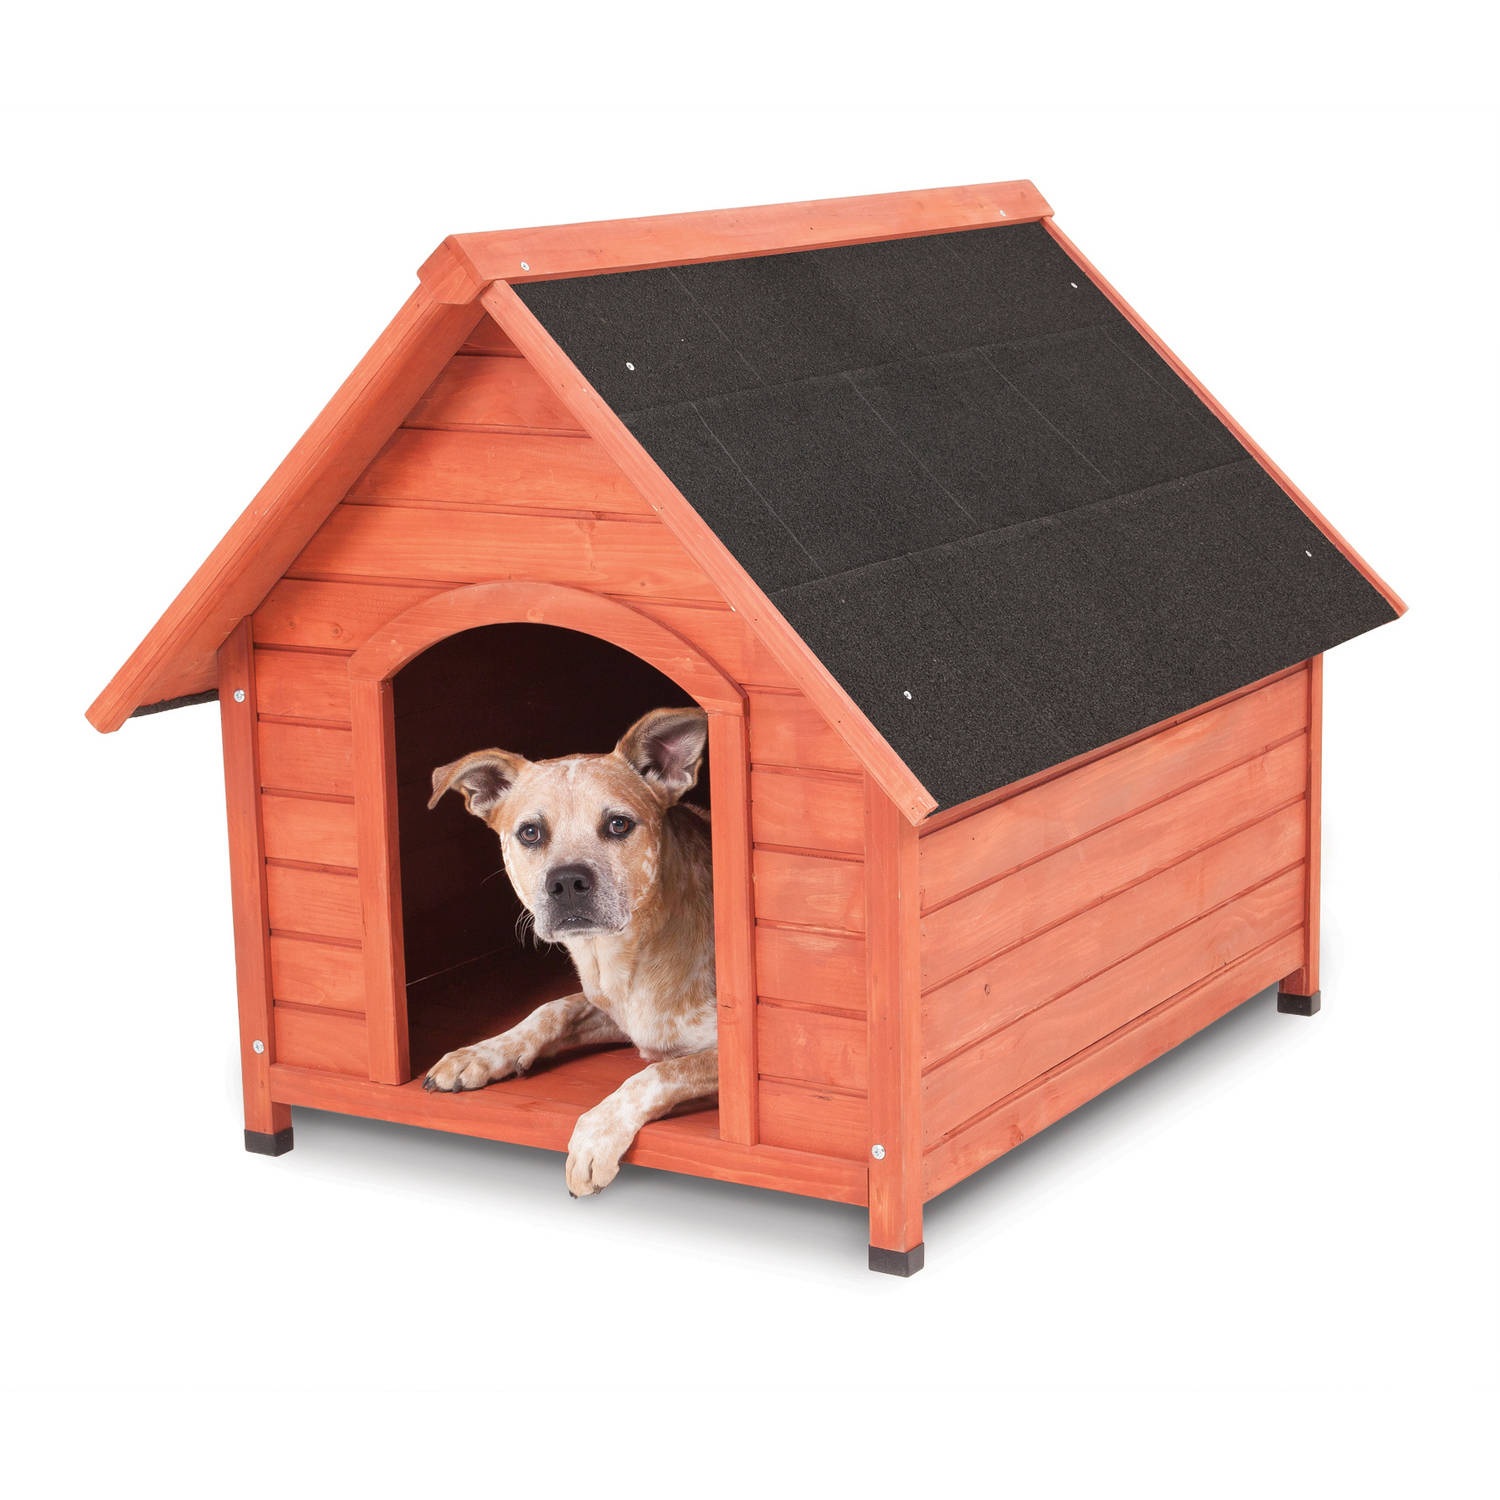 How to build a dog house cost best tips contractorculture for How to build a house without a contractor